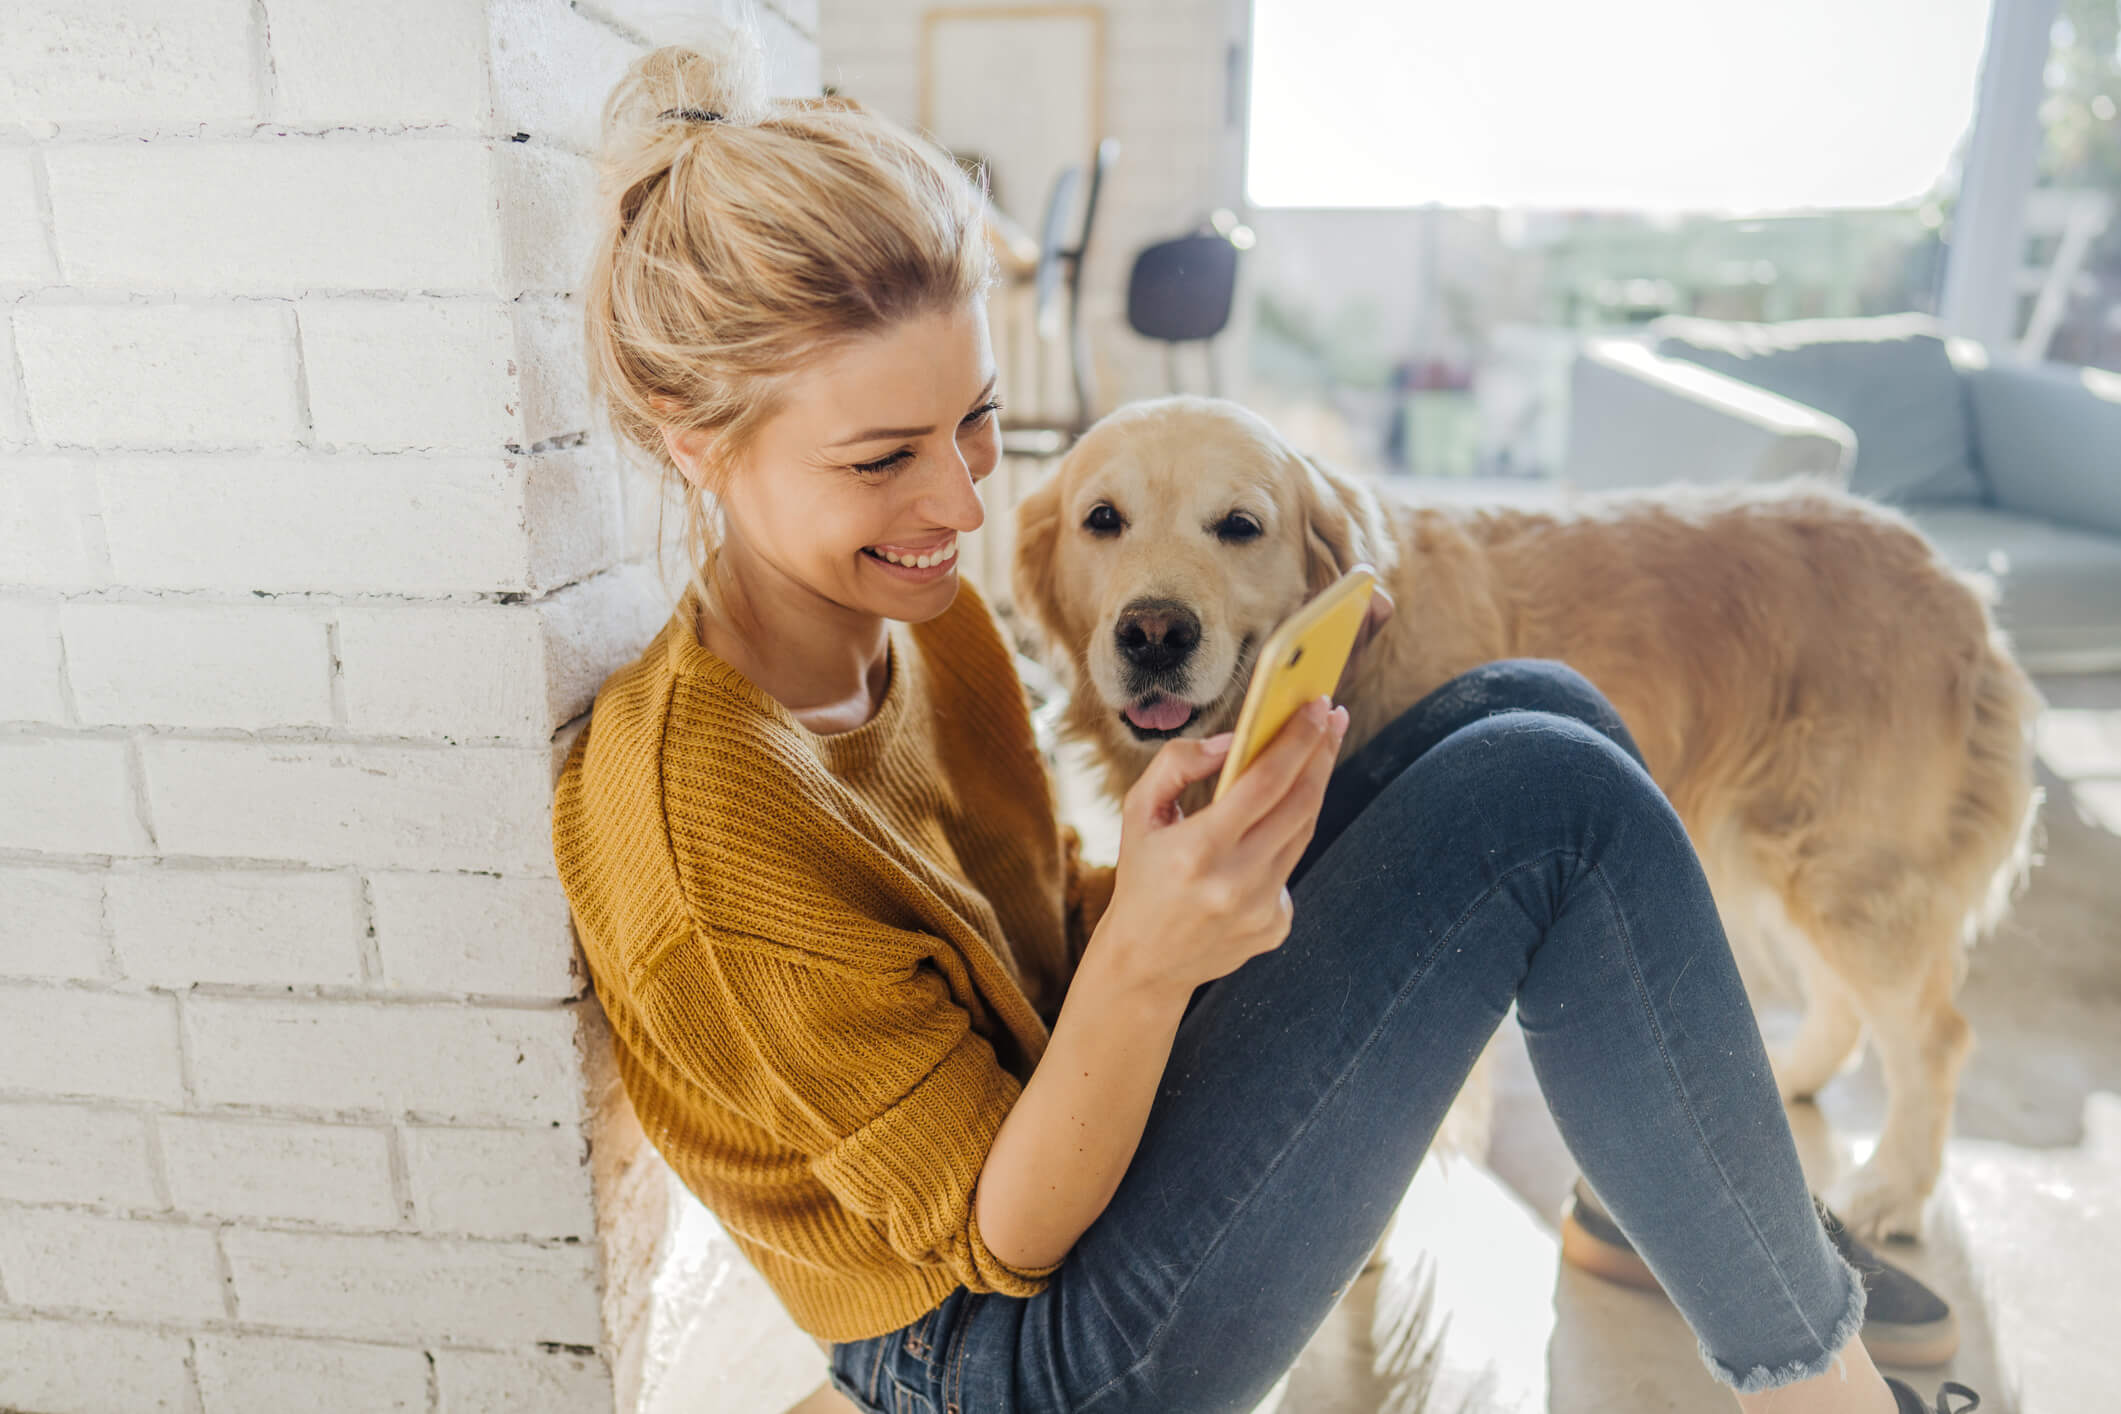 A woman is sitting on the ground with her Labrador while looking at her smartphone.